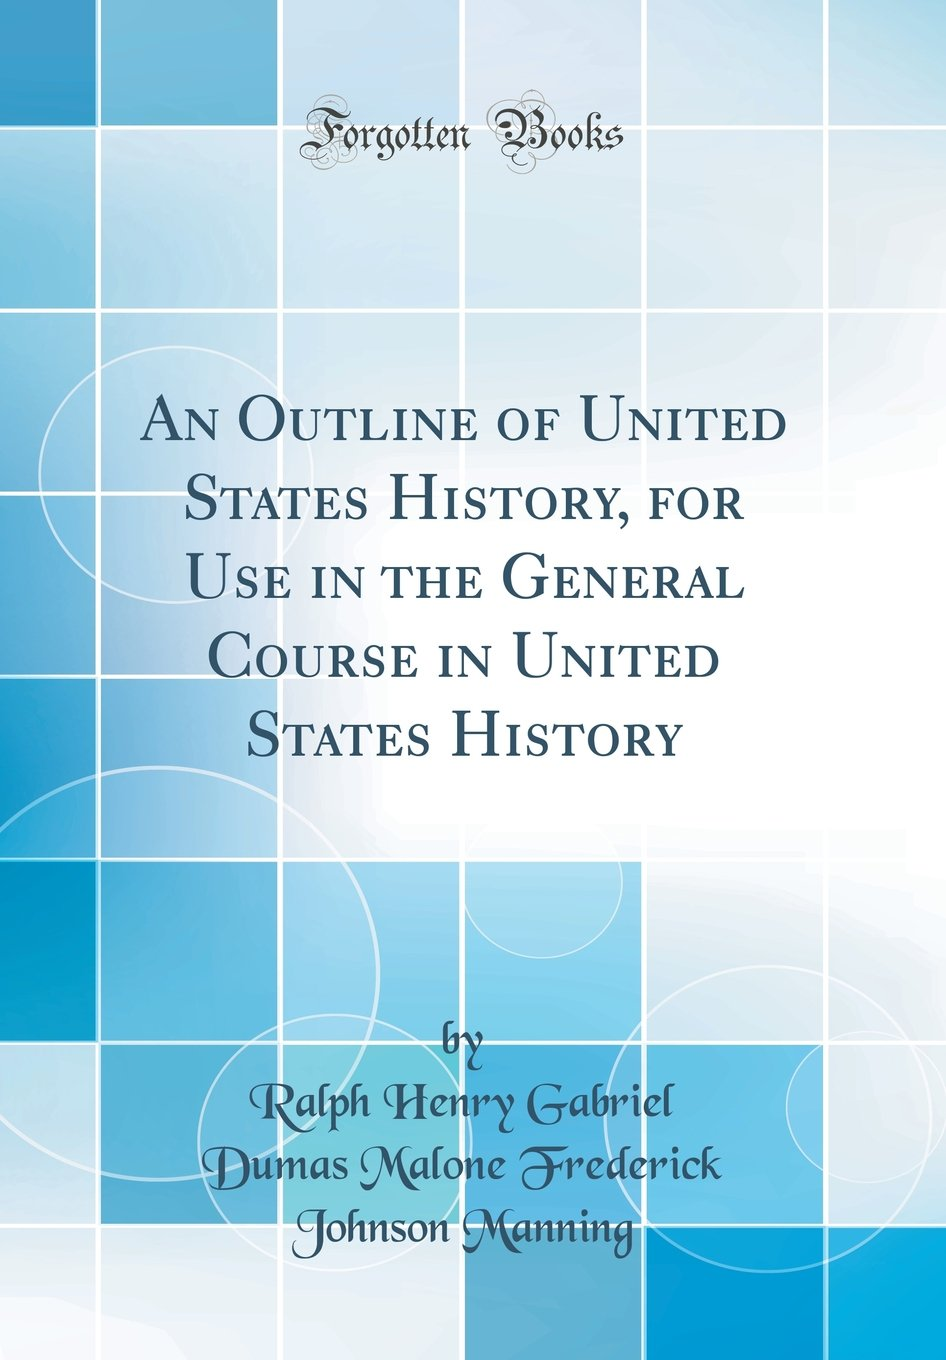 An outline of united states history for use in the general course an outline of united states history for use in the general course in united states history classic reprint ralph henry gabriel dumas malon manning publicscrutiny Images